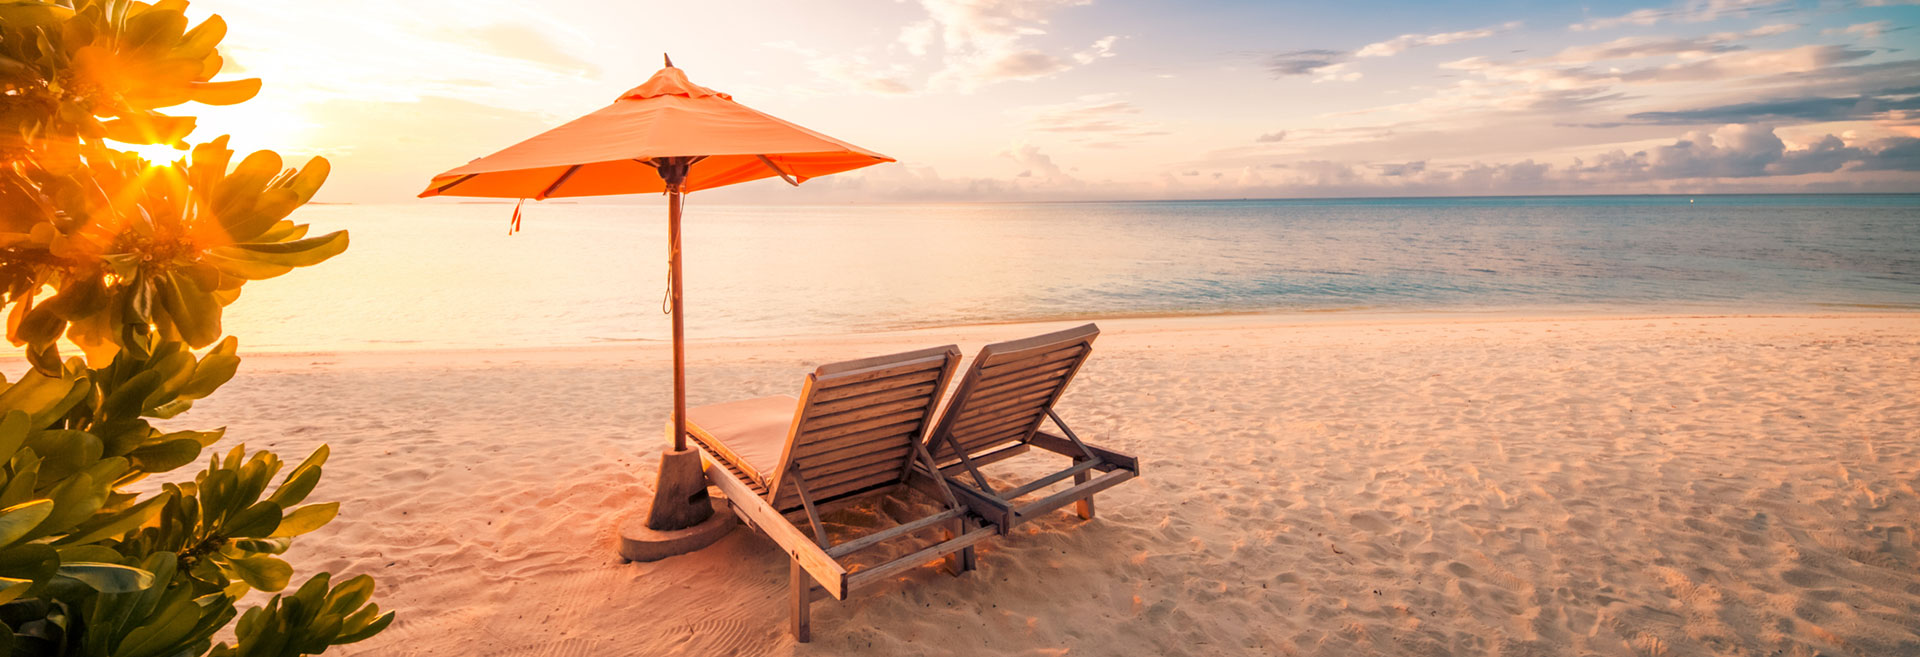 Wooden Beach Lounges with orange umbrella at the seaside escape of The Residences at The St. Regis Longboat Key Resort